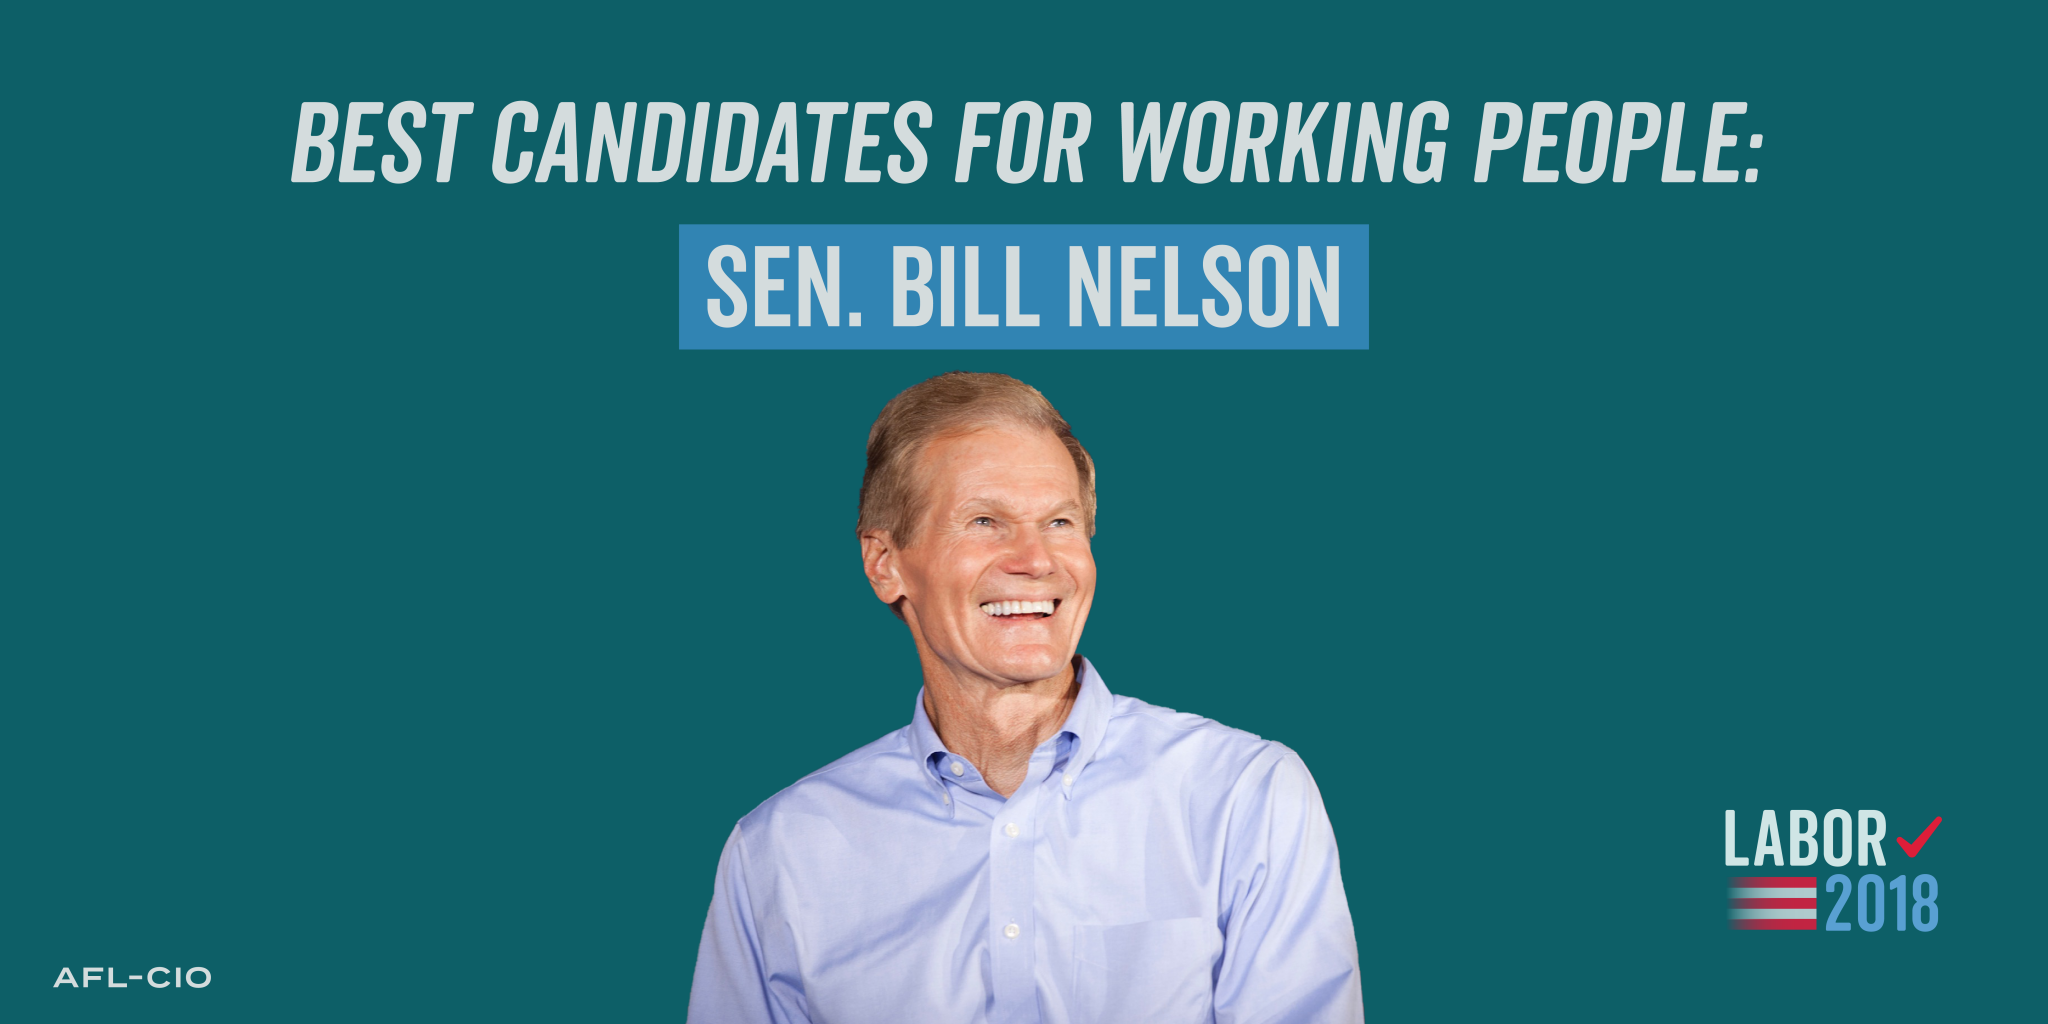 Best Candidates for Working People, 2018: Bill Nelson